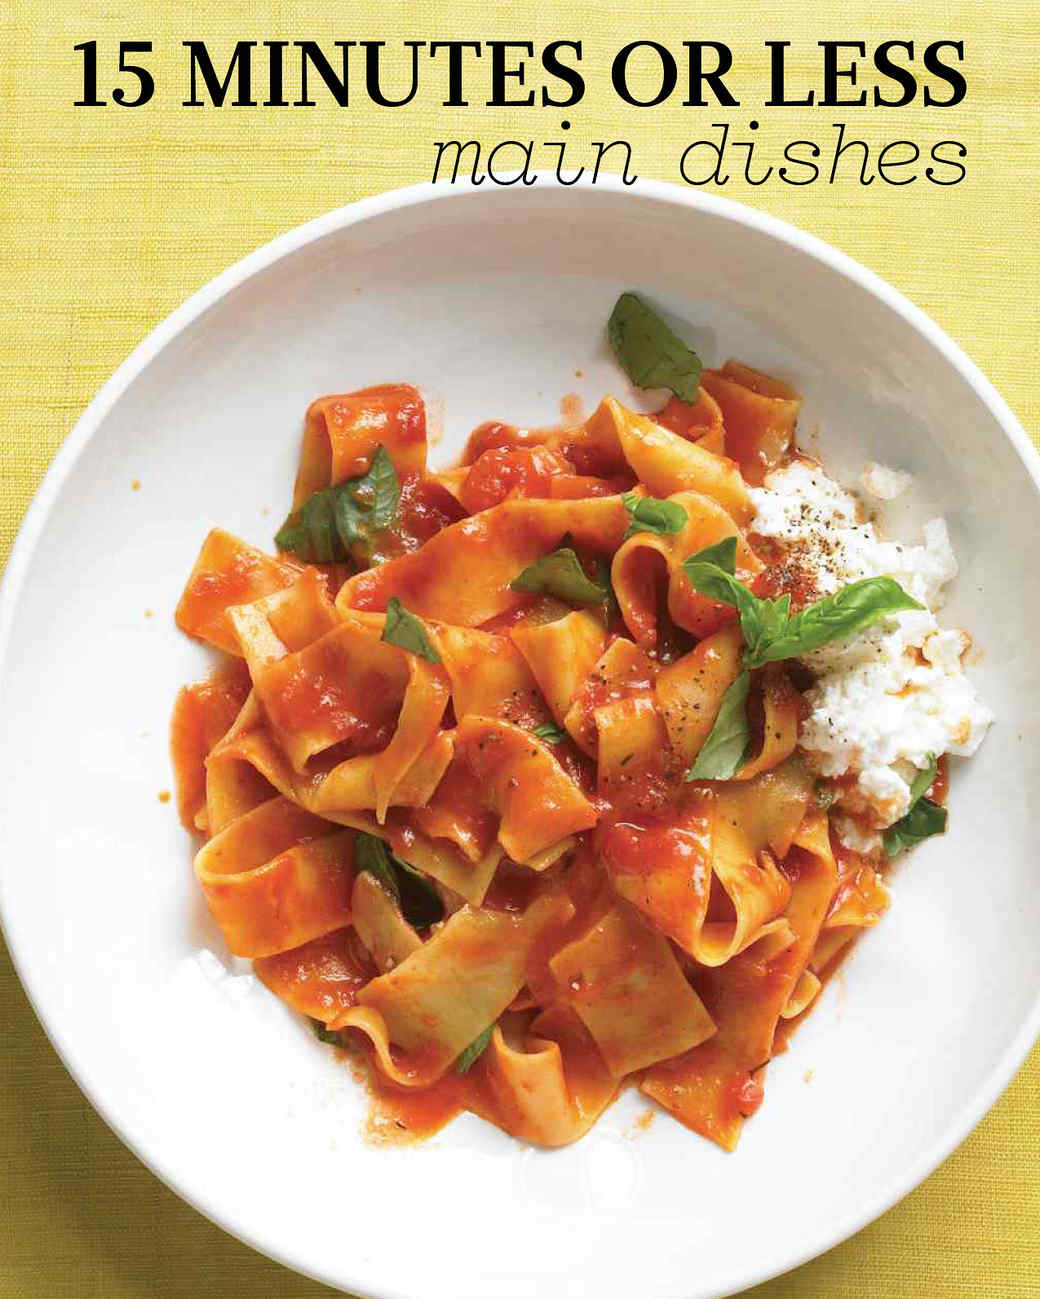 15 minutes or less main dish recipes martha stewart 1 of 38 forumfinder Gallery